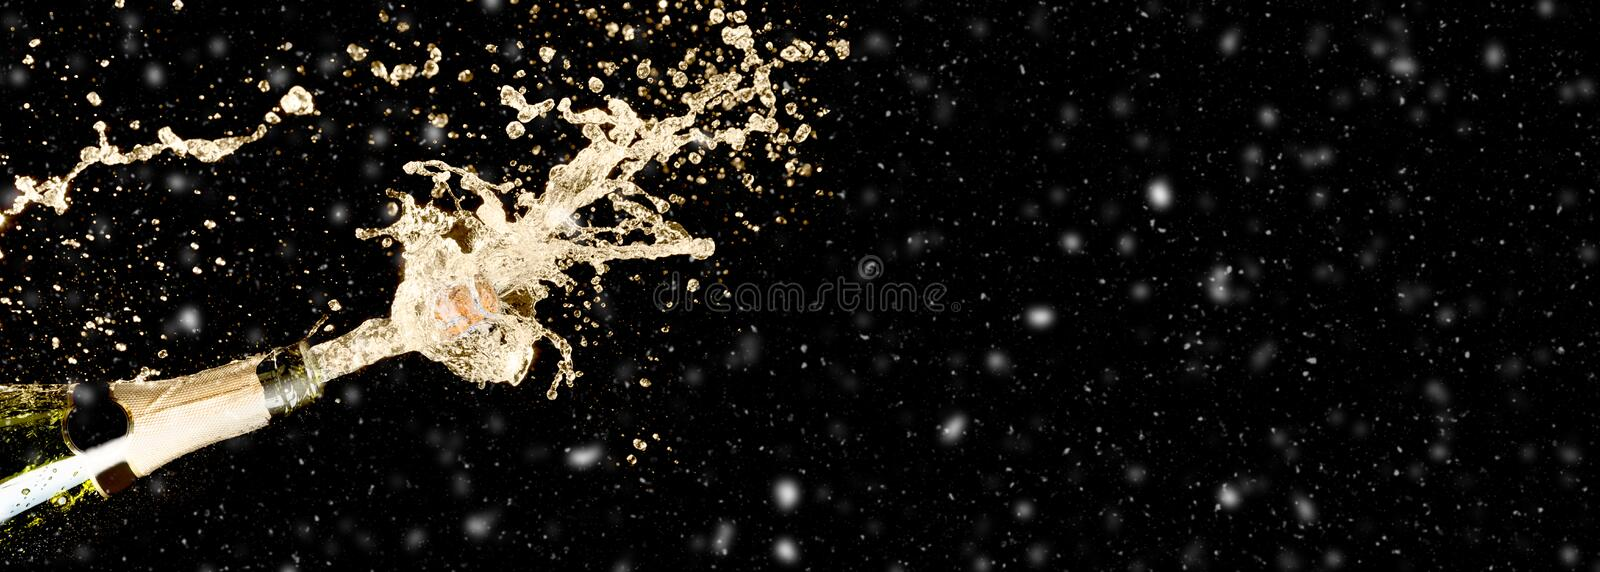 Celebration theme with splashing champagne on black background with snow and free space. Christmas or New Year, Valentines day royalty free stock image